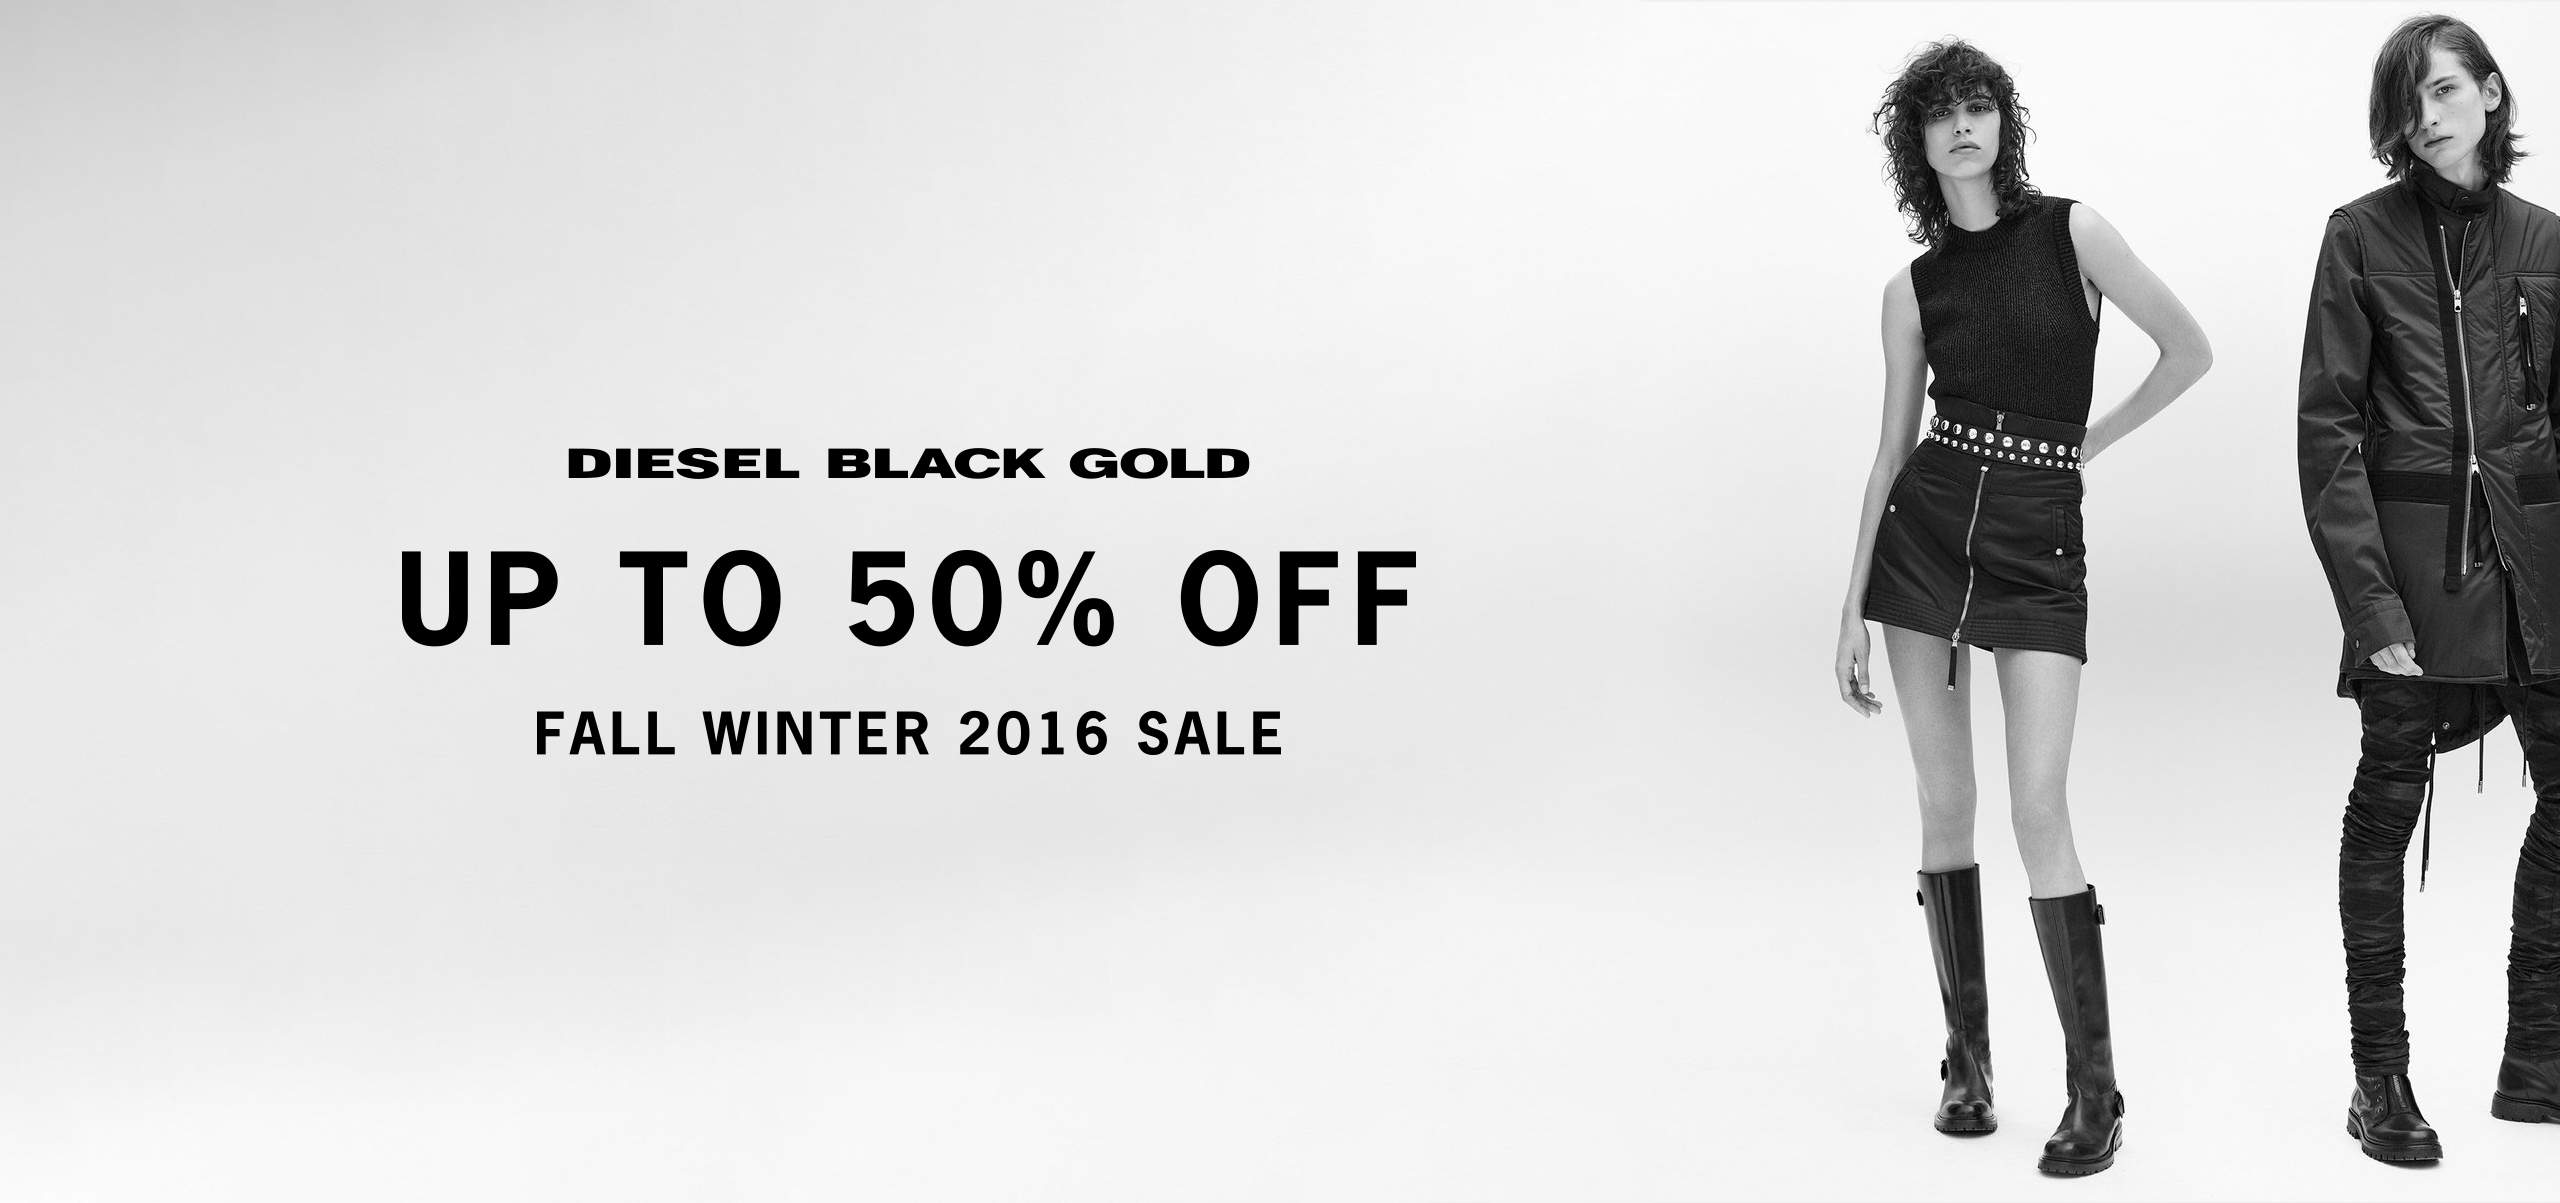 DIESEL BLACK GOLD SALE